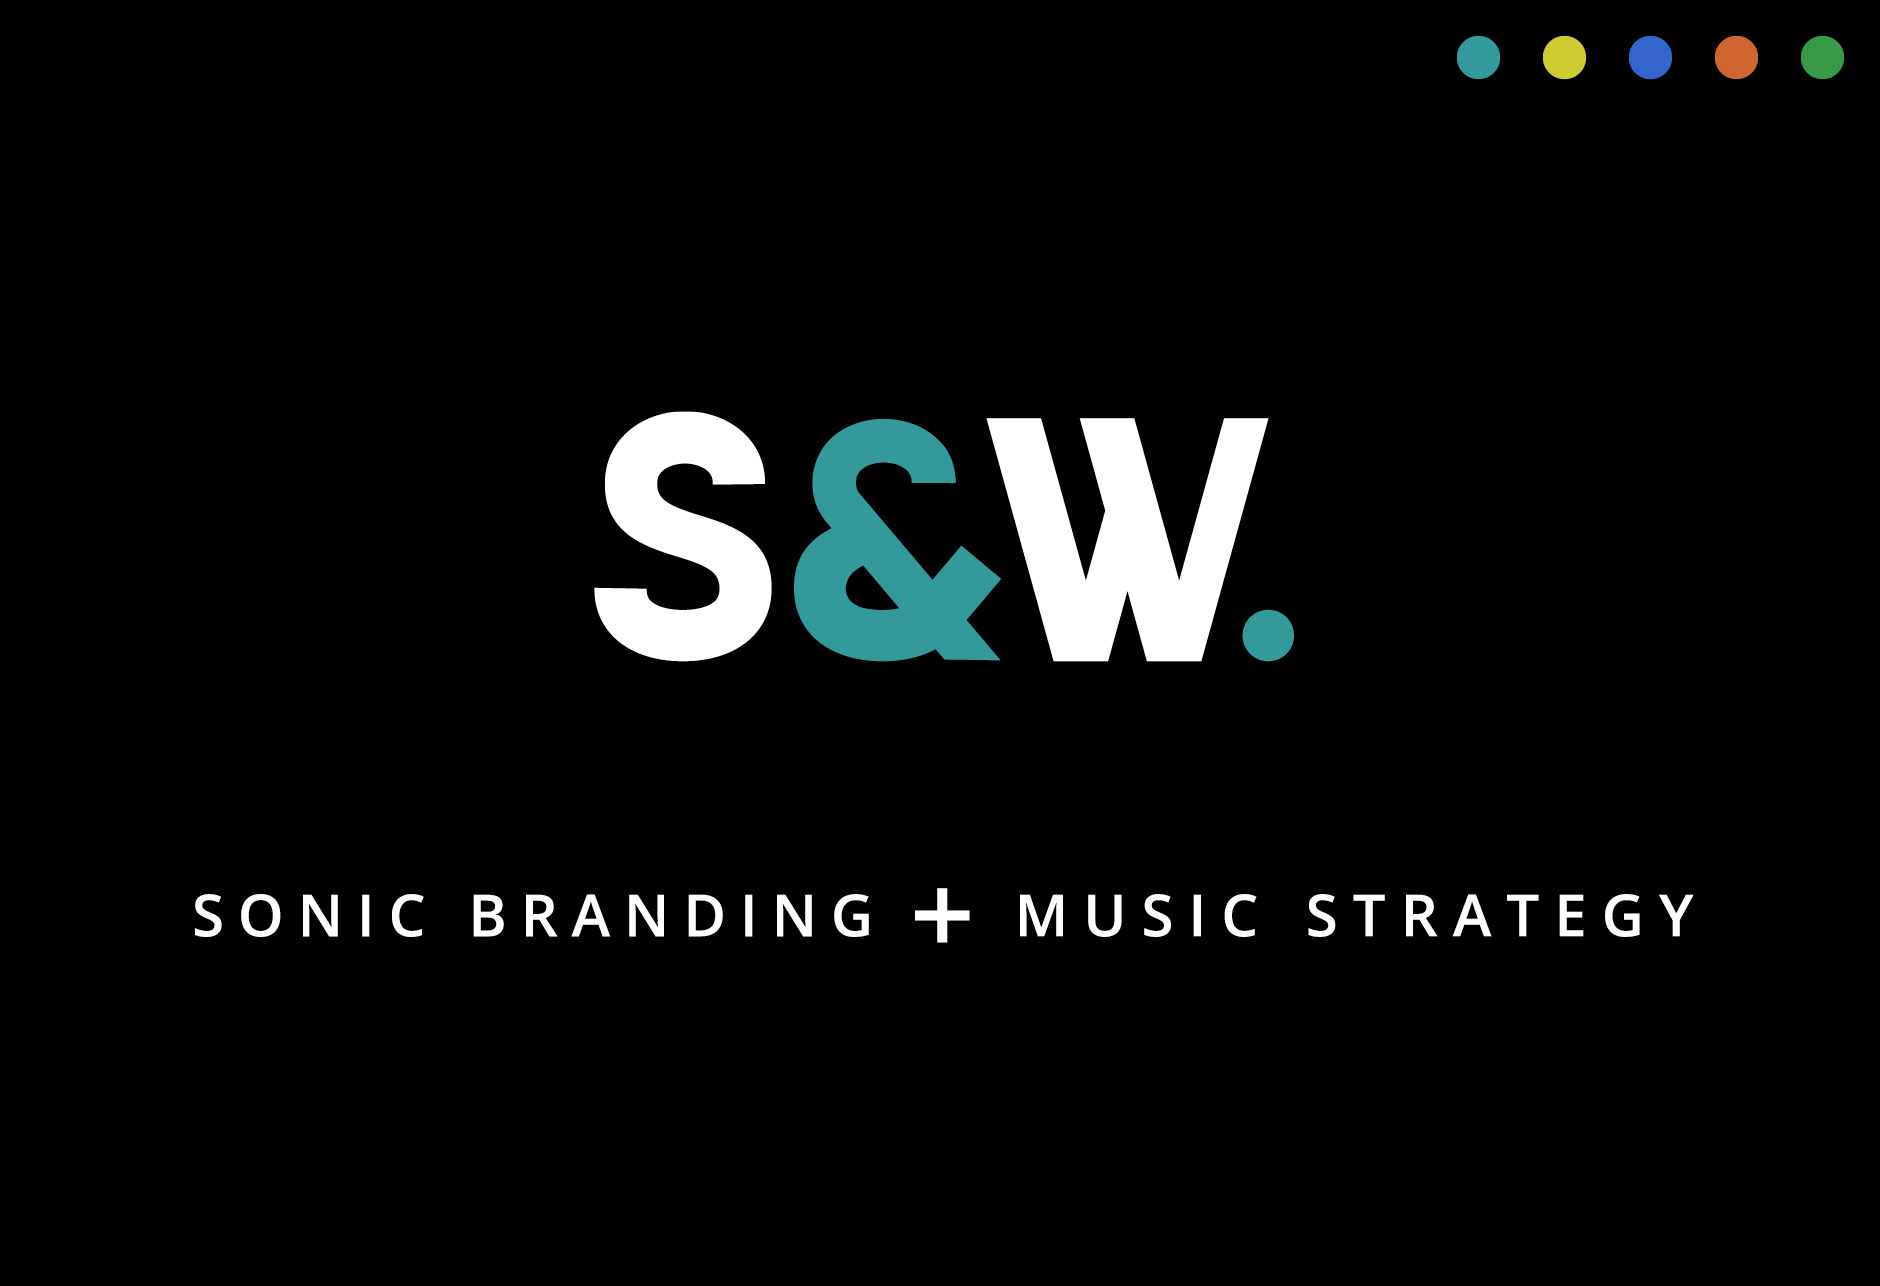 Audio's increasing presence prompts Smith & Western's launch of S&W Sonic Branding